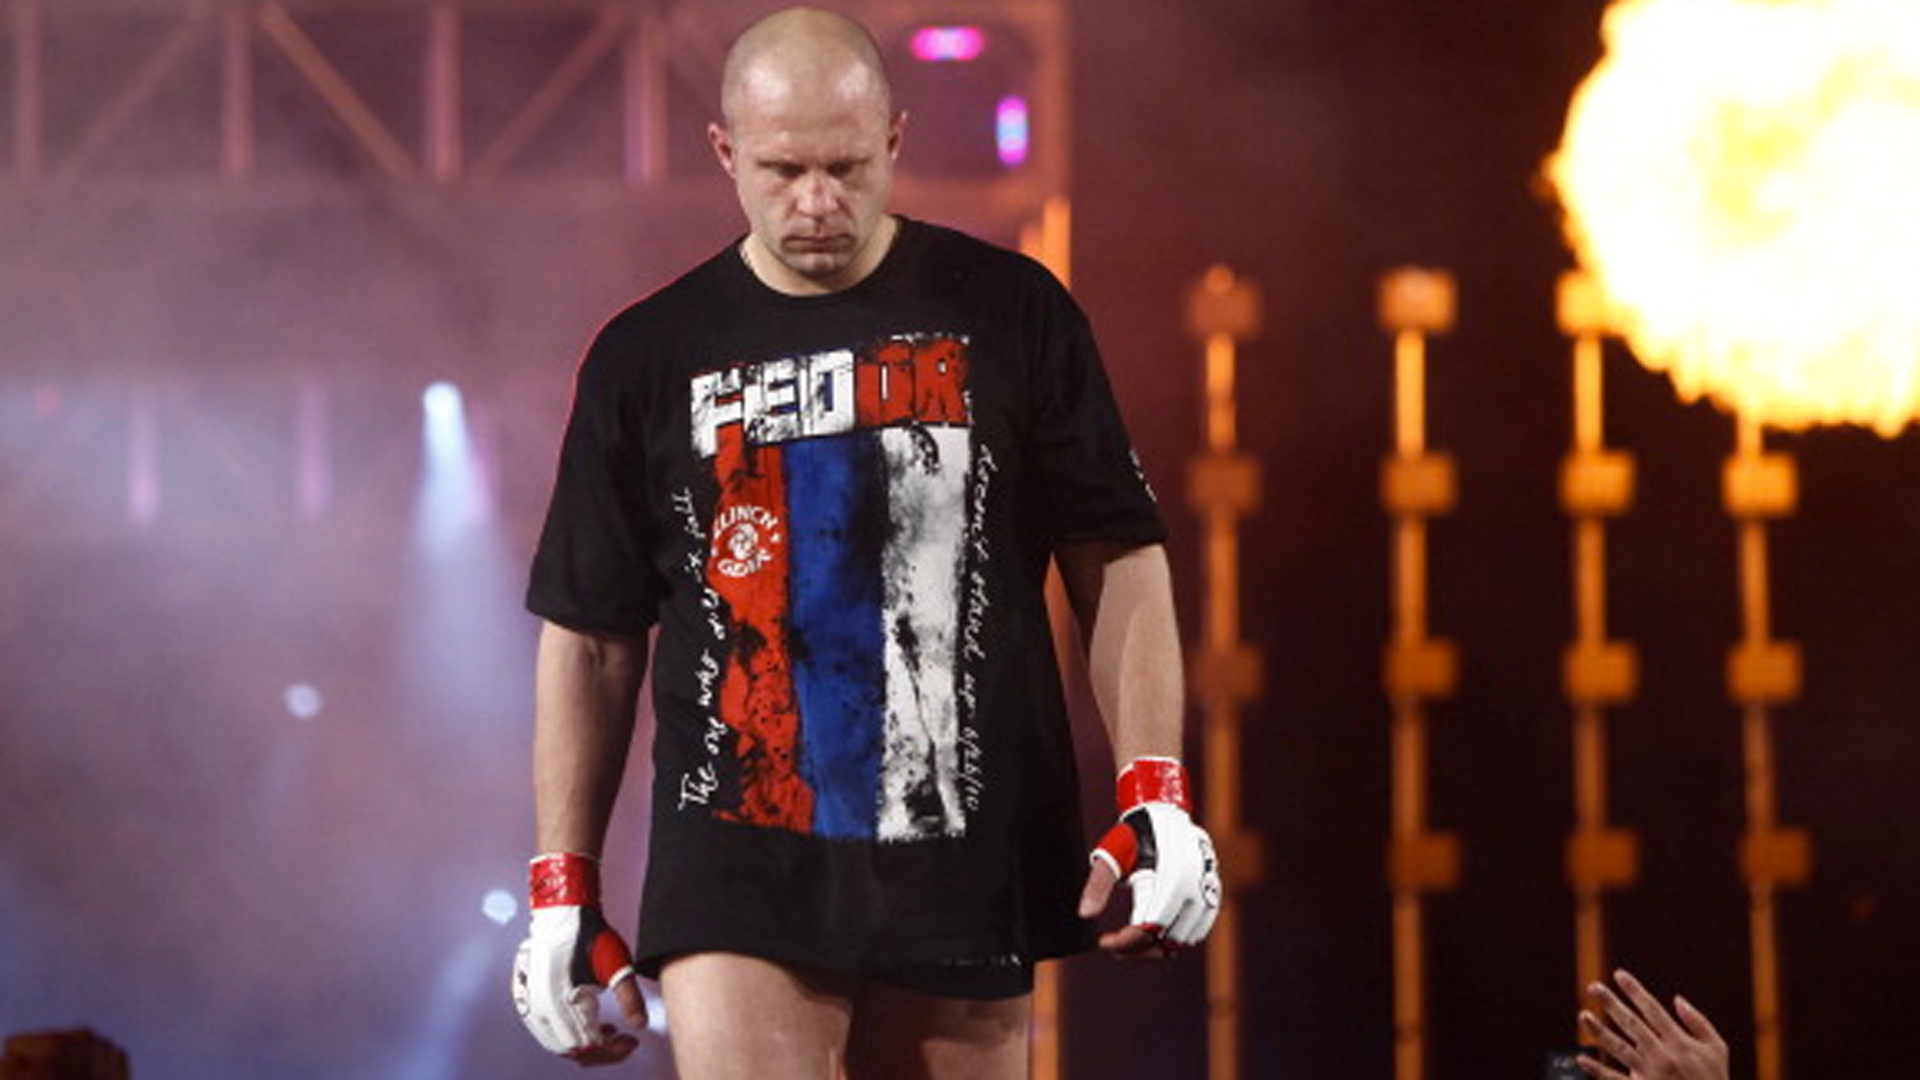 Undistracted by FBI visit, Emelianenko wins by TKO over Mir